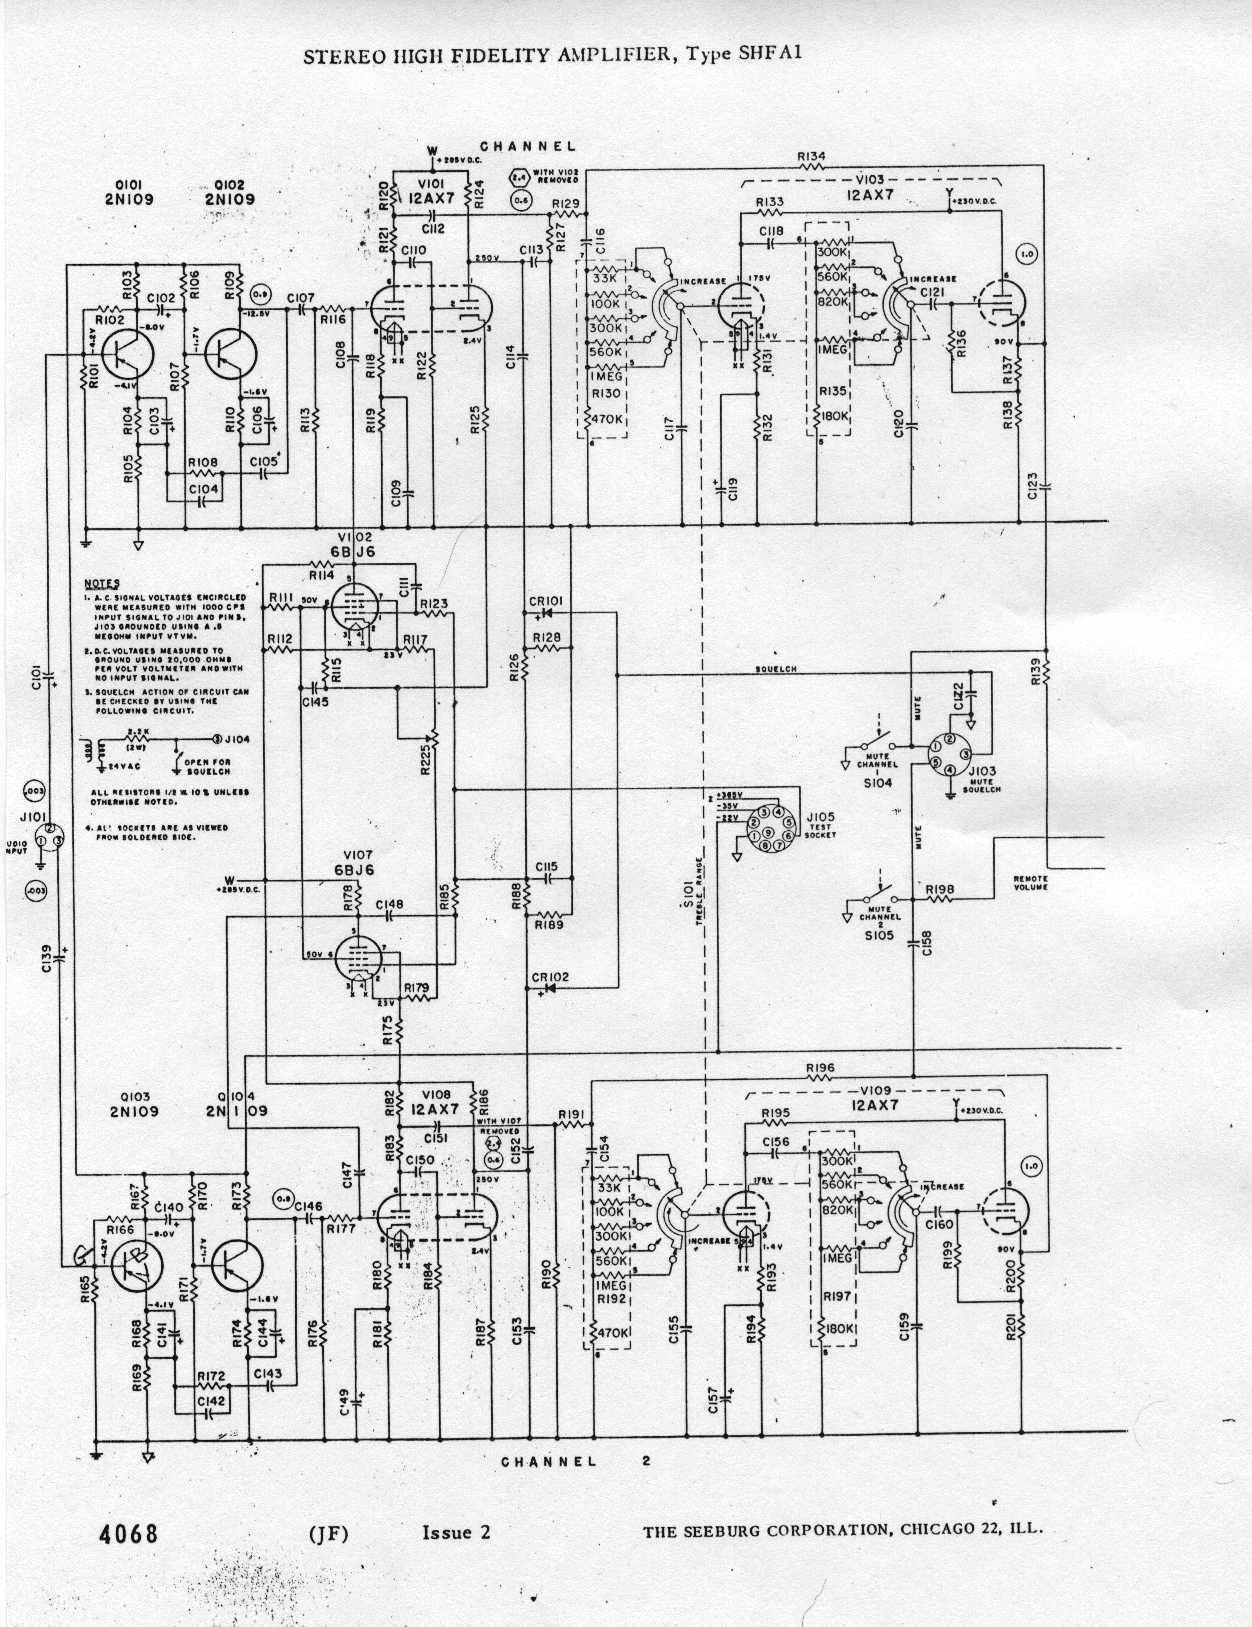 From Notarysojac At Sbcglobalnet Tue Jan 1 070353 2013 Rowe Ami Jukebox Electronic Circuit Board Repair All Models R80s To R Shfa1